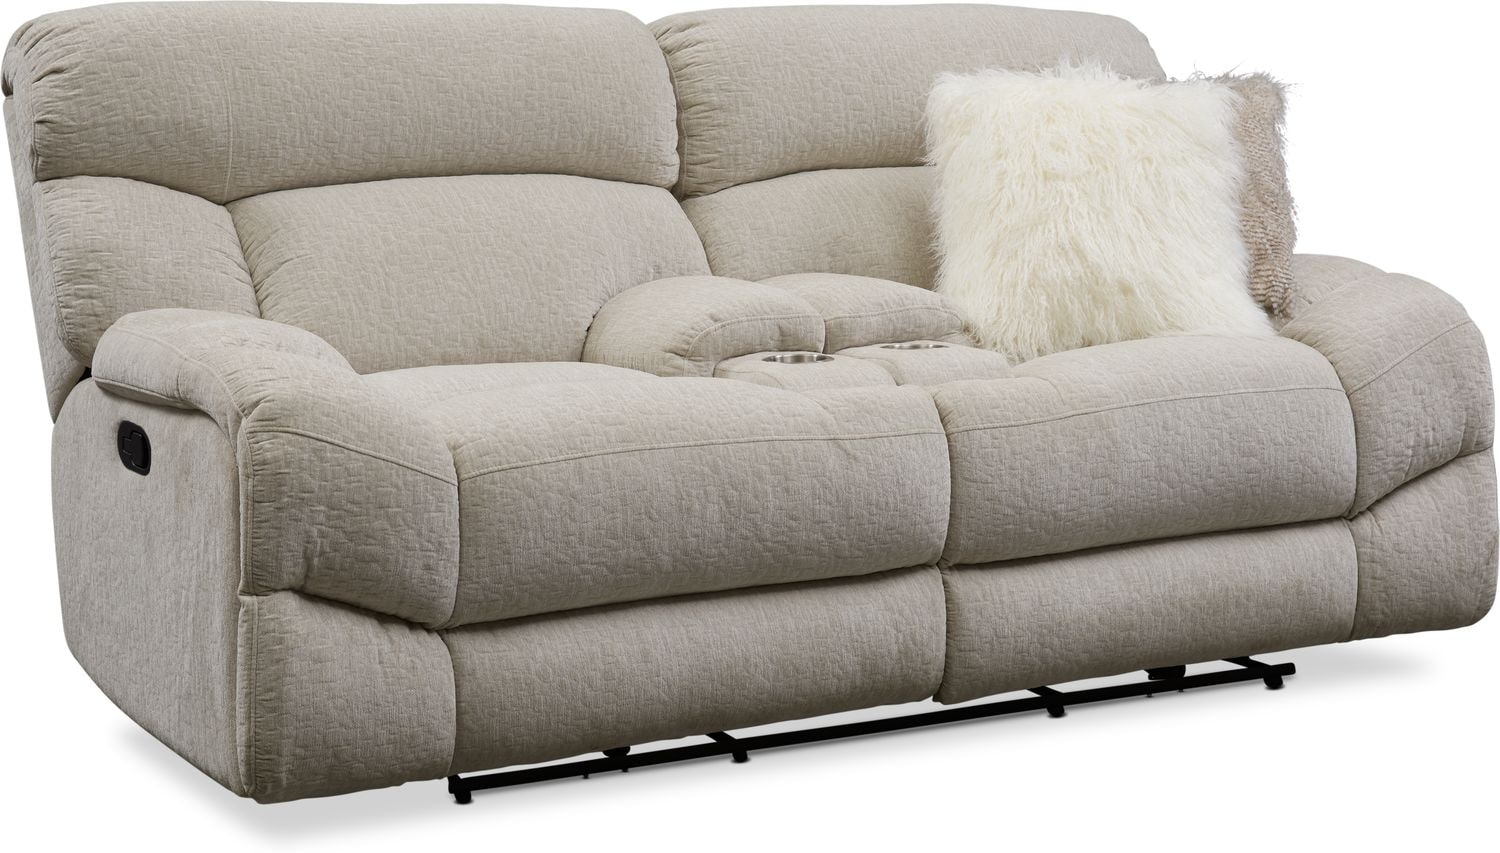 Living Room Furniture - Wave Manual Reclining Loveseat